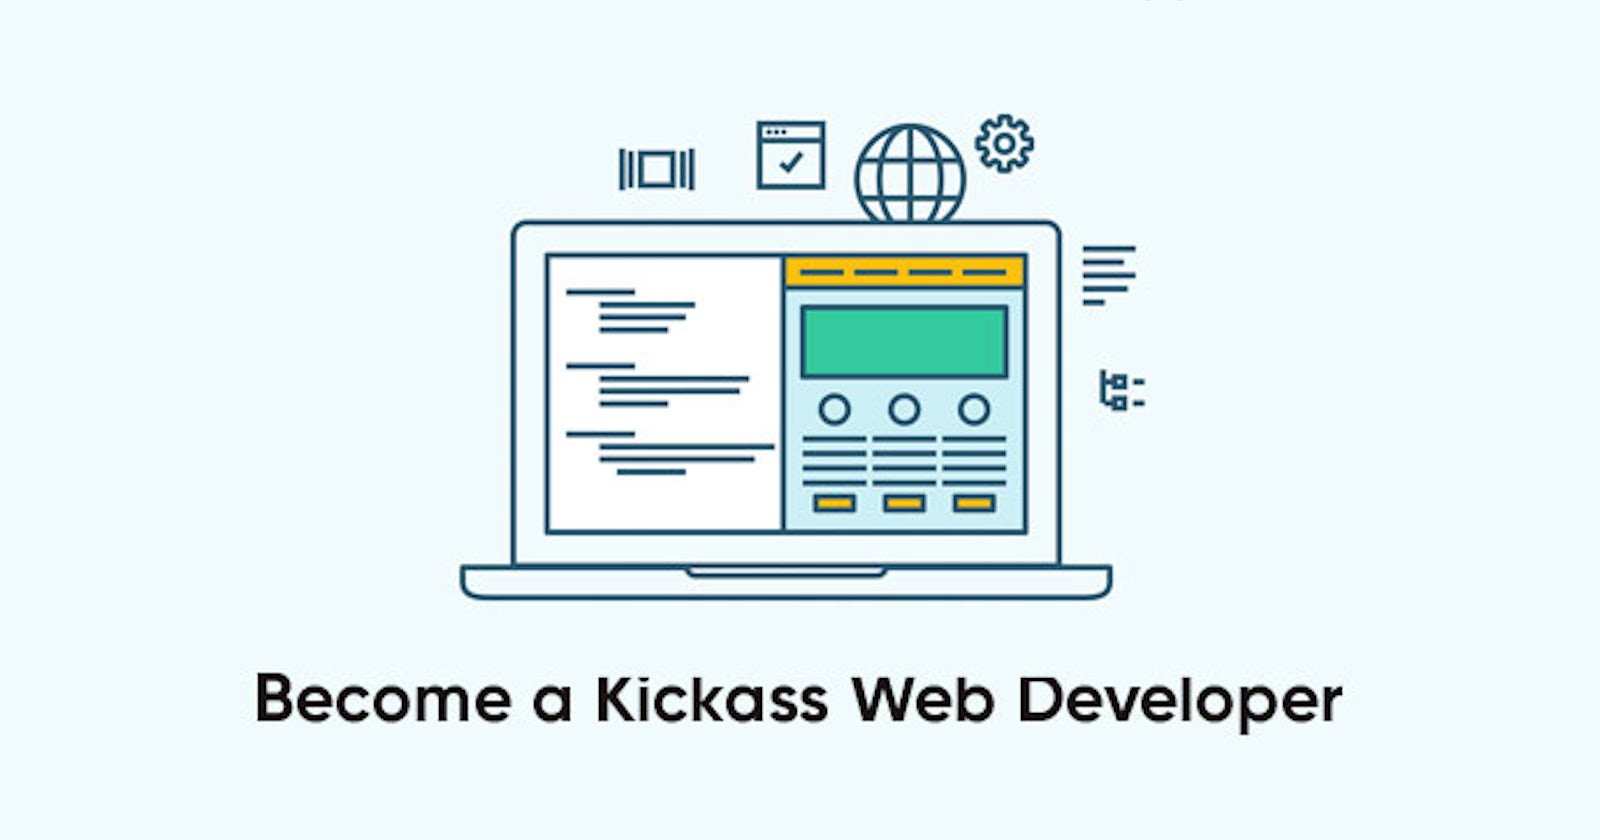 How to become a Kickass Web Developer in 2021